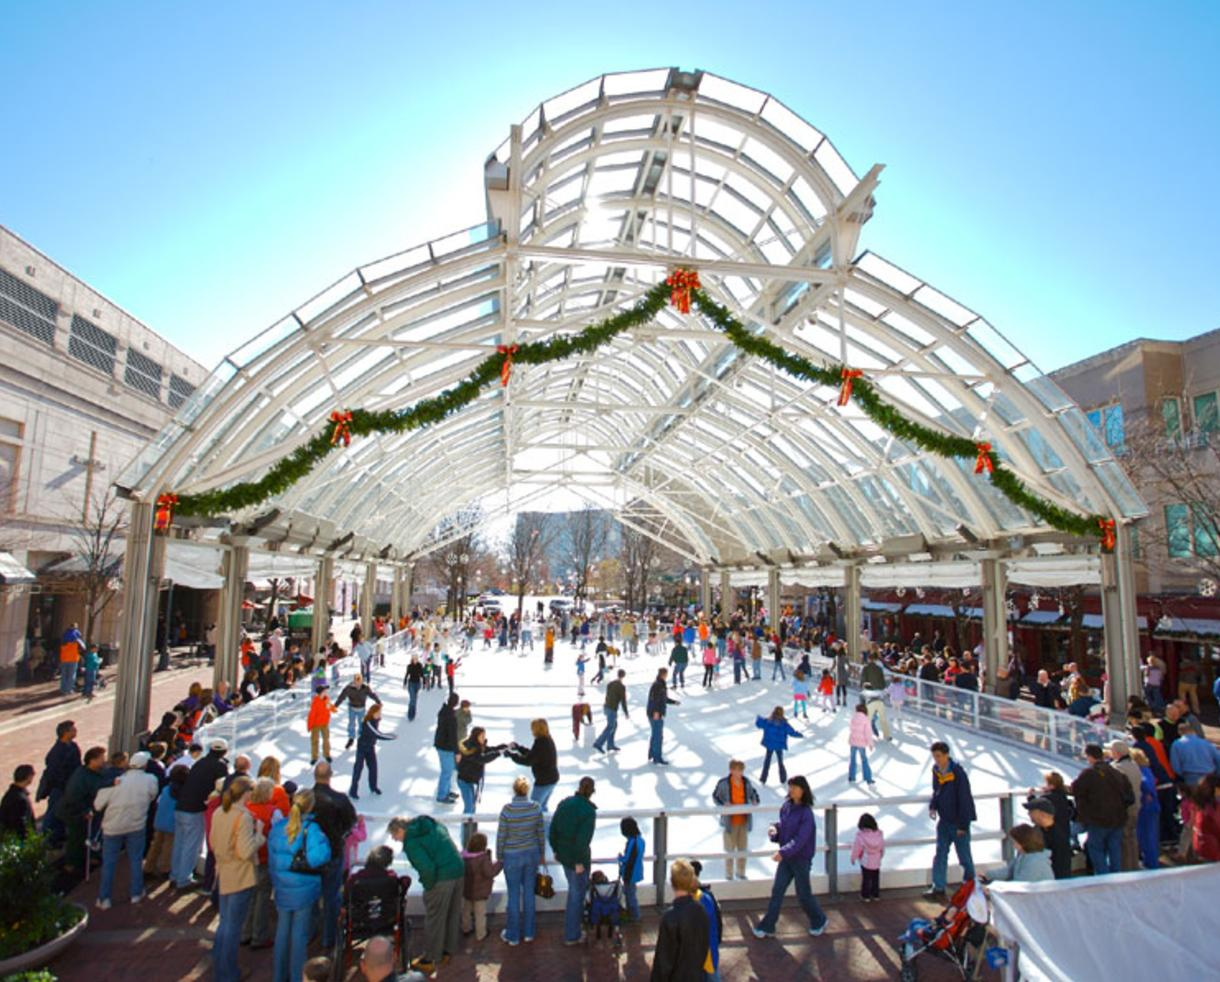 $16 for 2 Admissions - Adult or Child - Including Skate Rentals at Reston Town Center Ice Skating Pavilion ($32 Value - 50% Off)